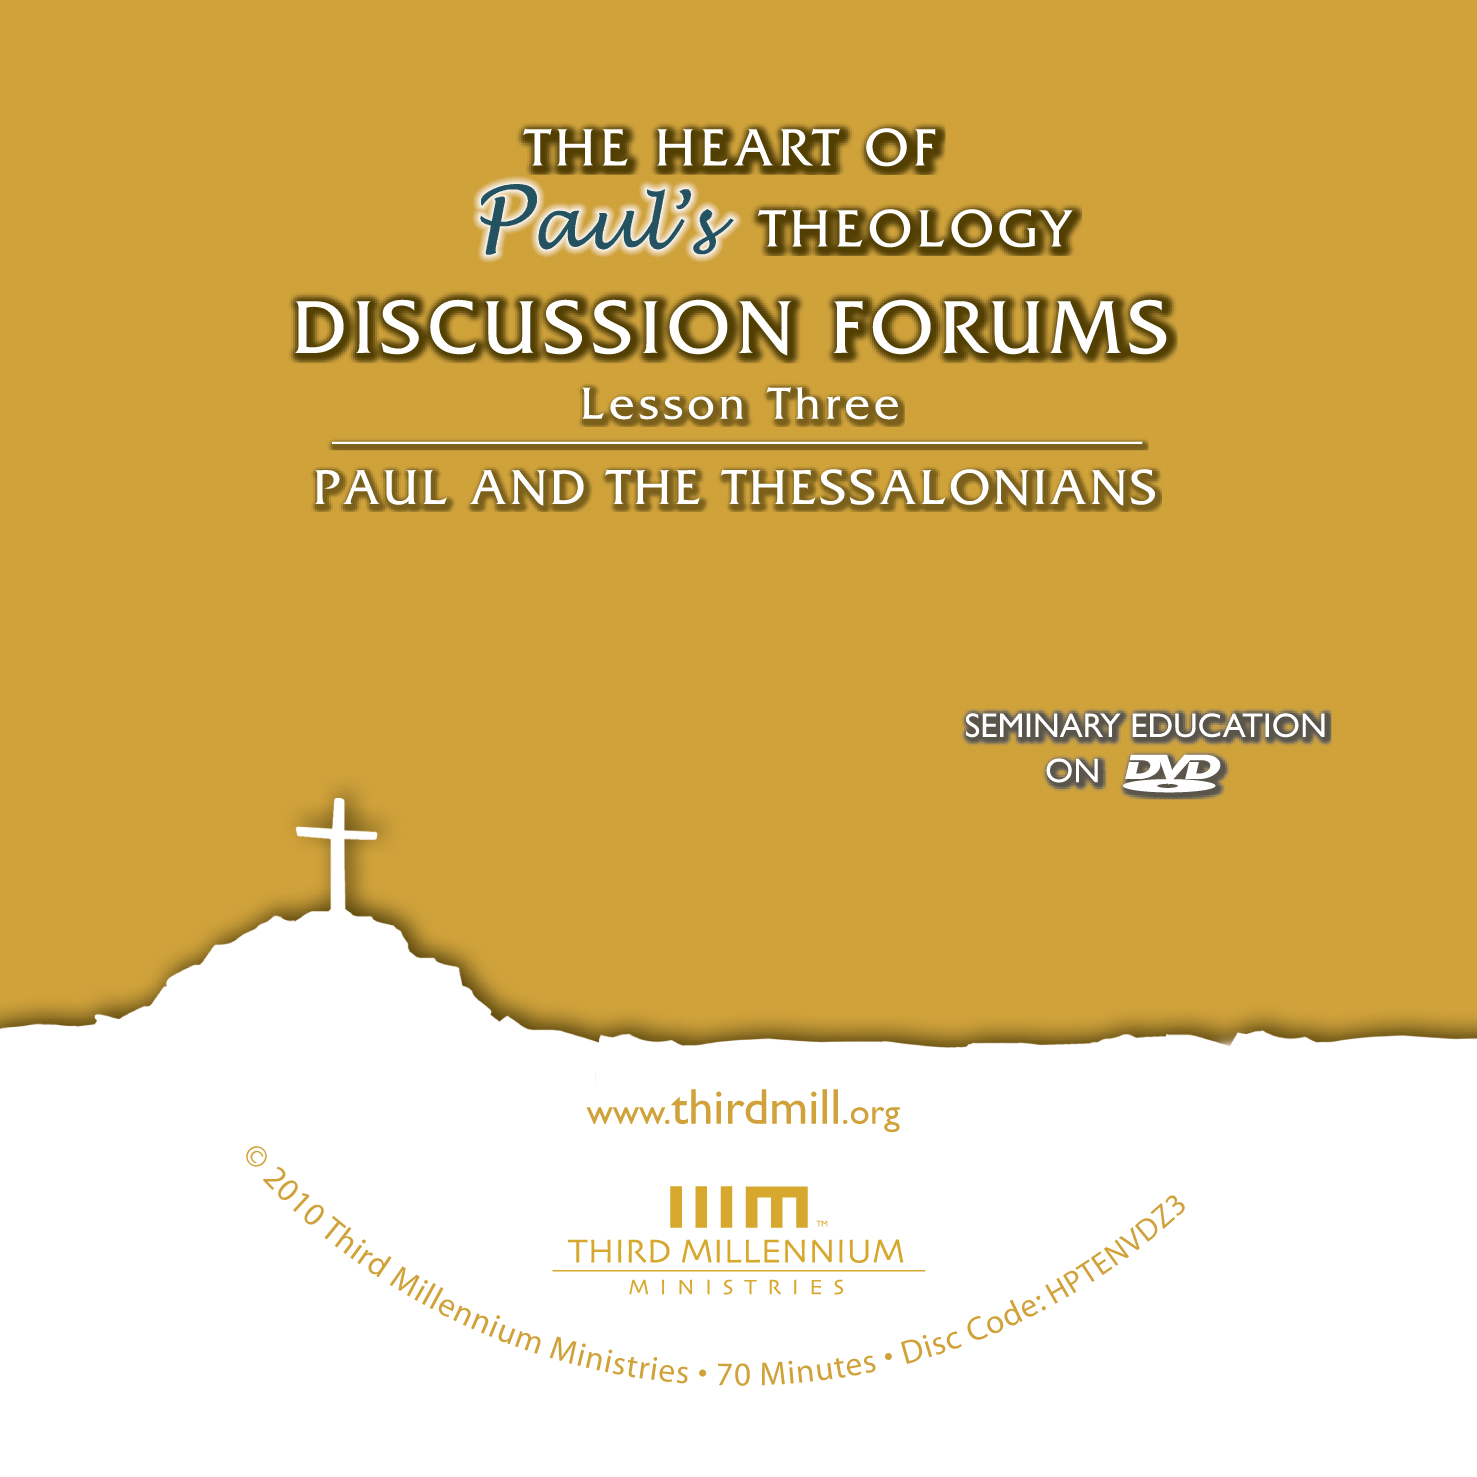 The heart of pauls theology paul and the thessalonians discussion disc art jpg fandeluxe Gallery